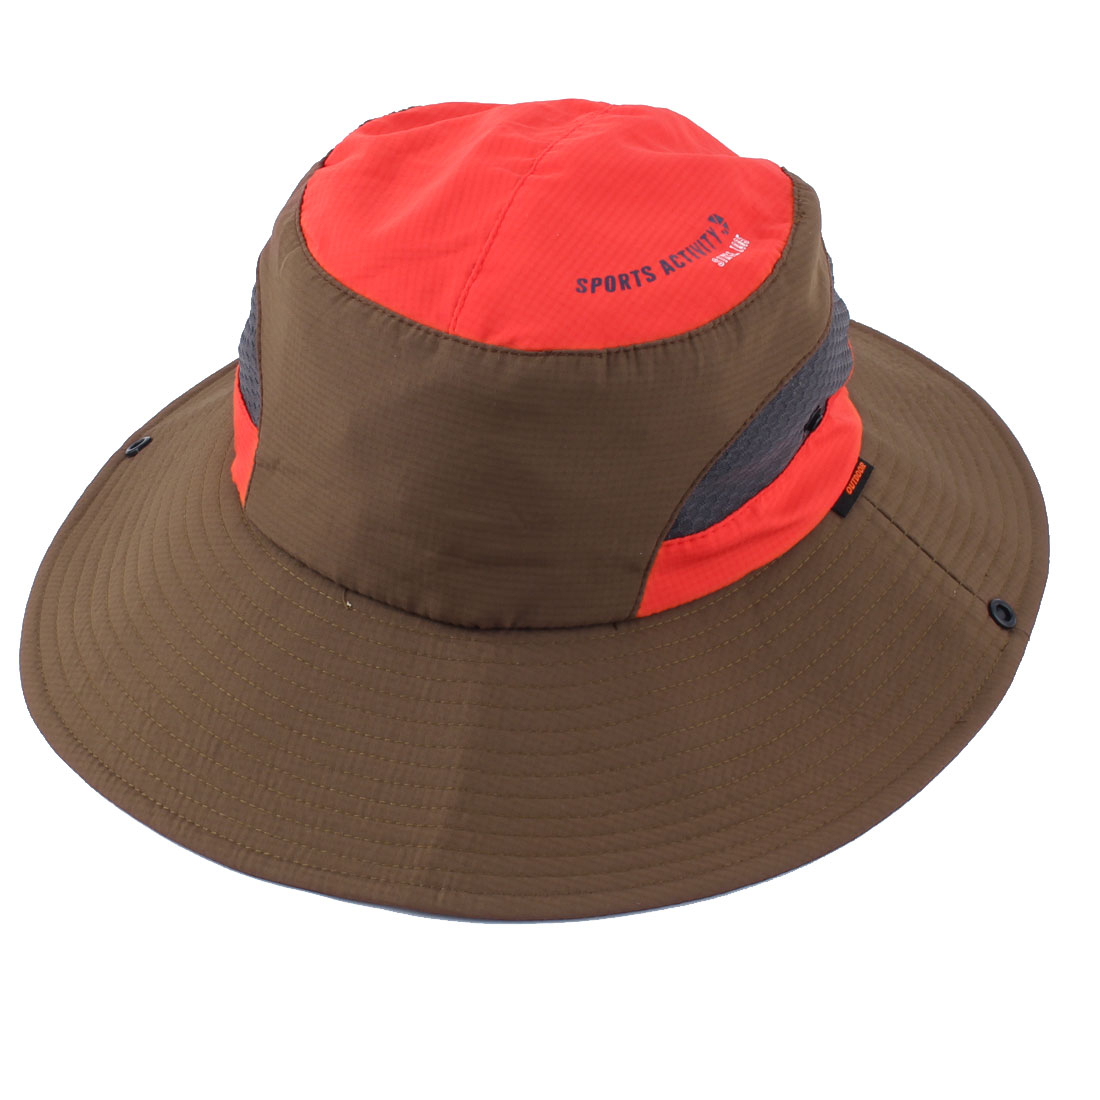 Fisherman Outdoor Fishing Travel Climbing Cycling Adjustable Folding Bucket Cap Floppy Hat Brown